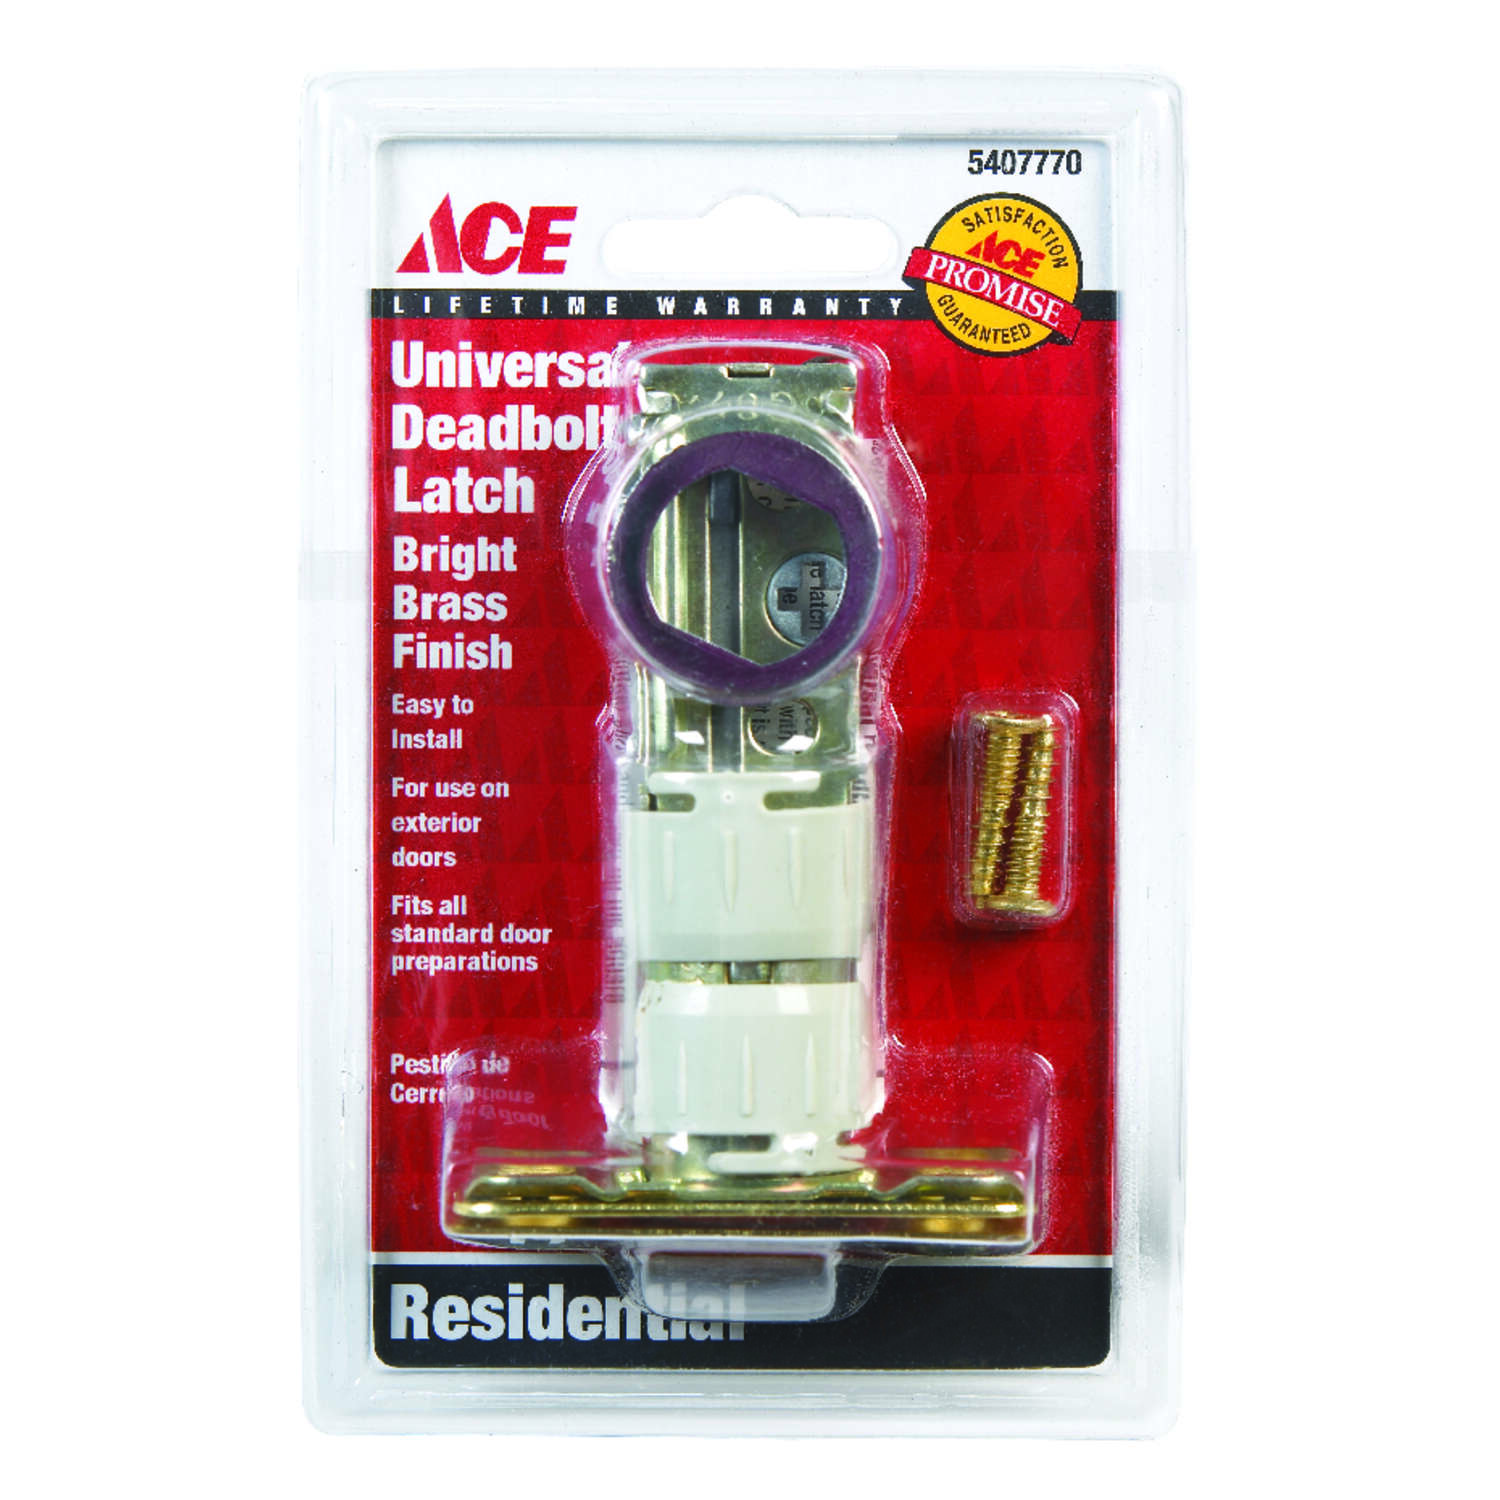 Ace  Bright Brass  Steel  Deadbolt Latch  1 pk